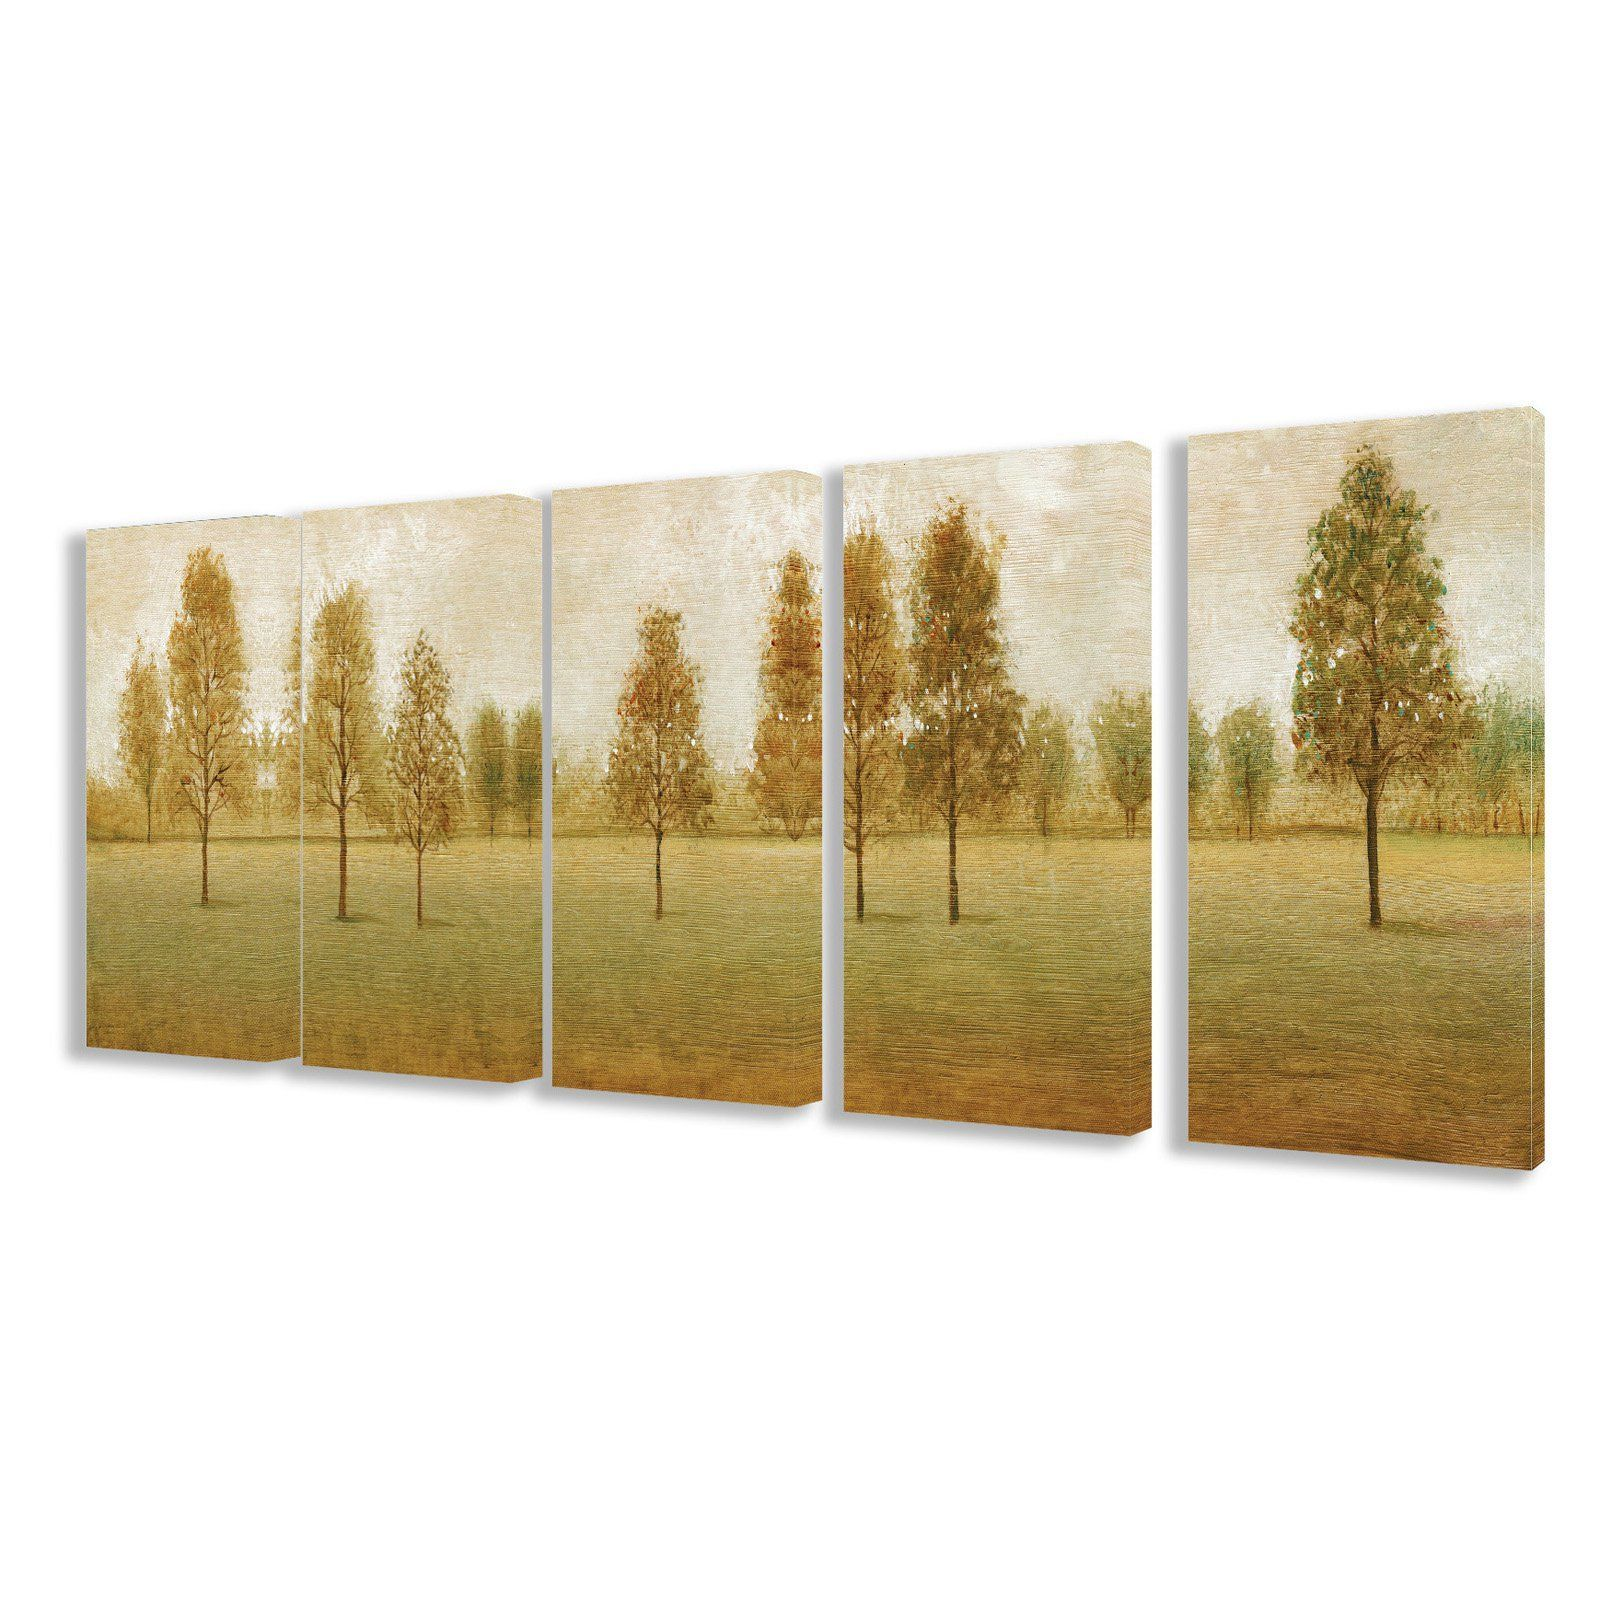 Stupell Decor Trees In A Park Wall Art - Set of 5 - TWP ...